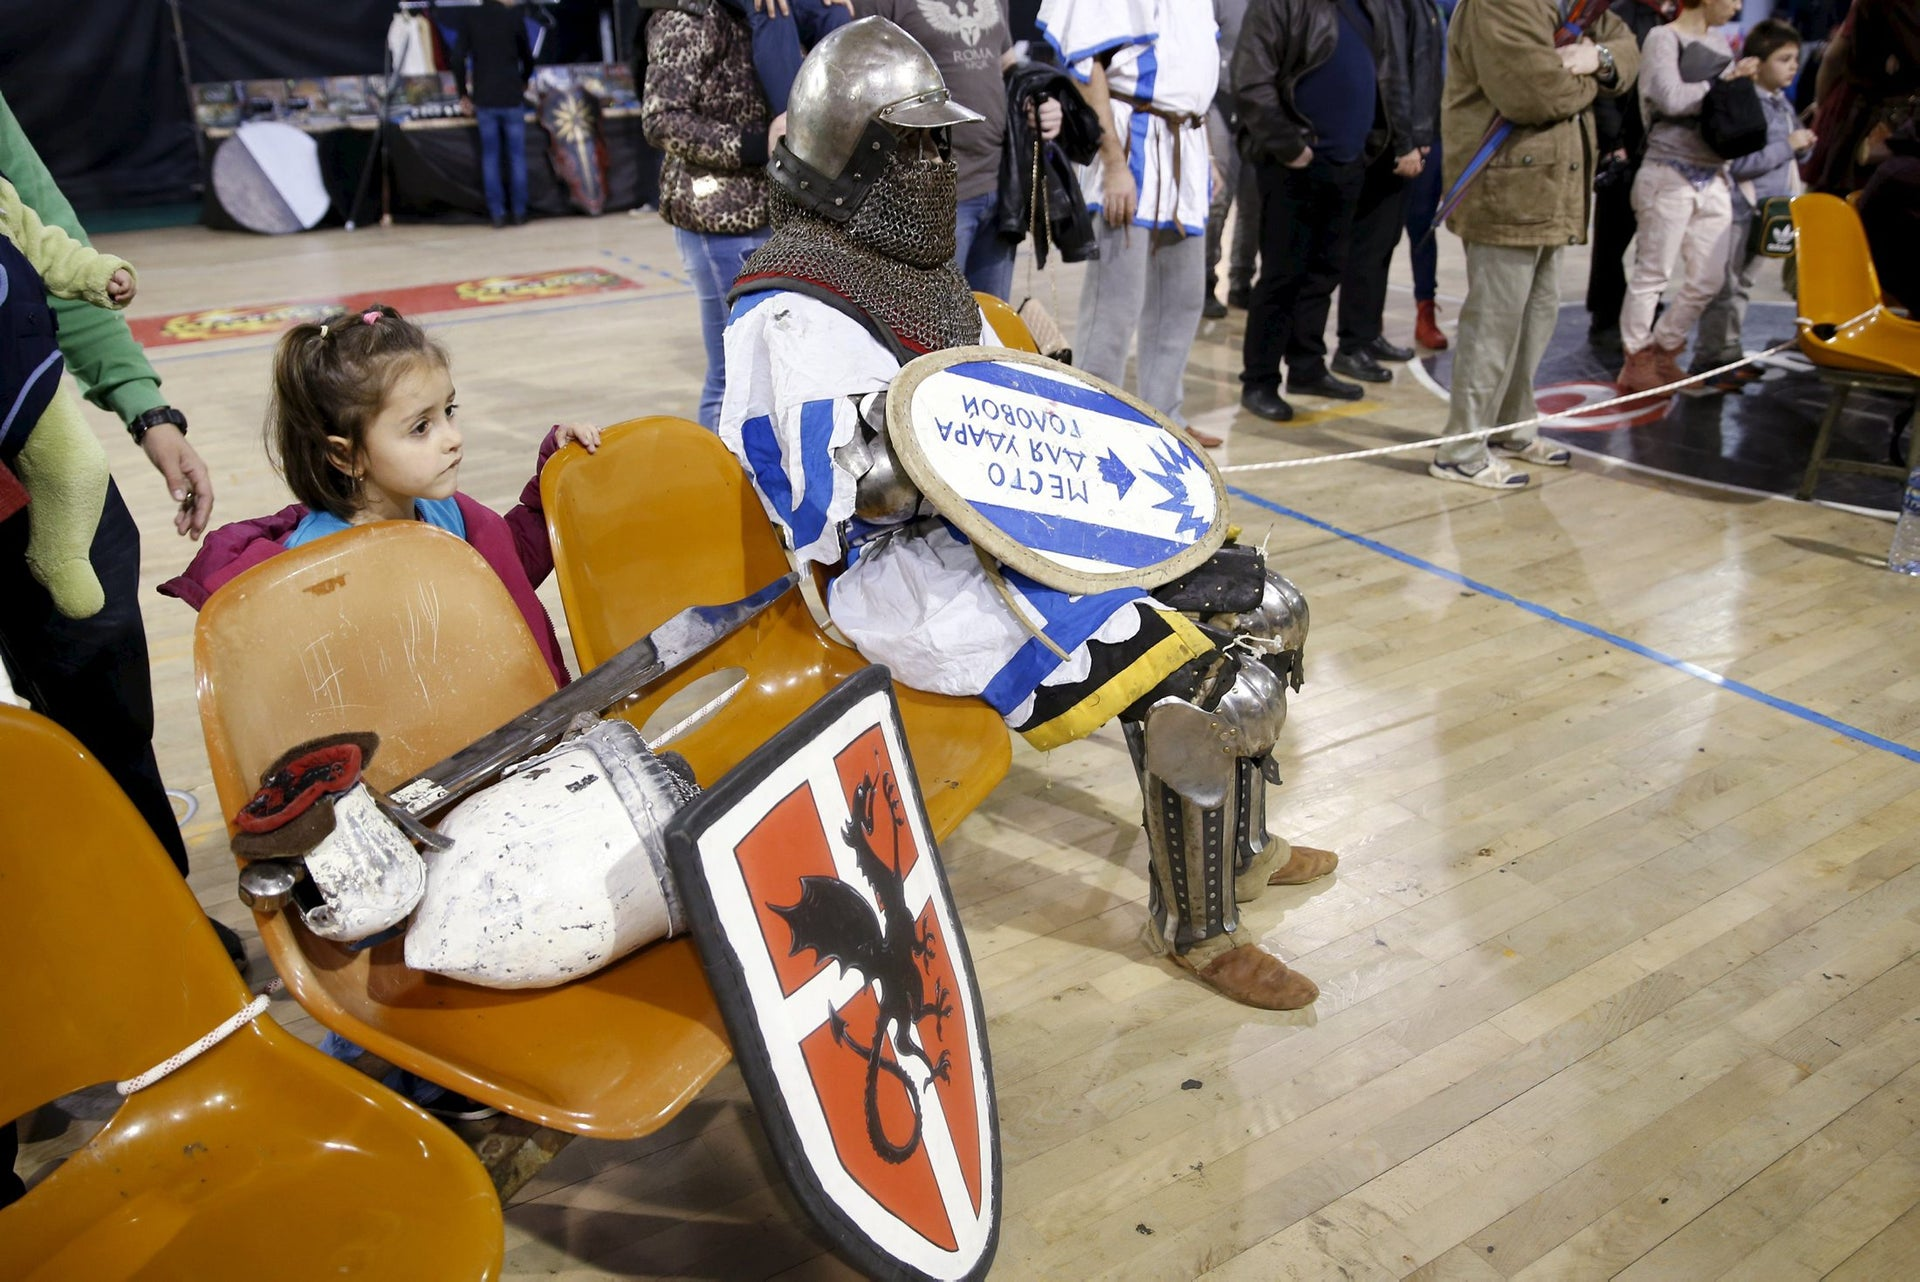 A man dressed as a knight waits before a fight at an international medieval tournament in Tel Aviv, January 23, 2016.